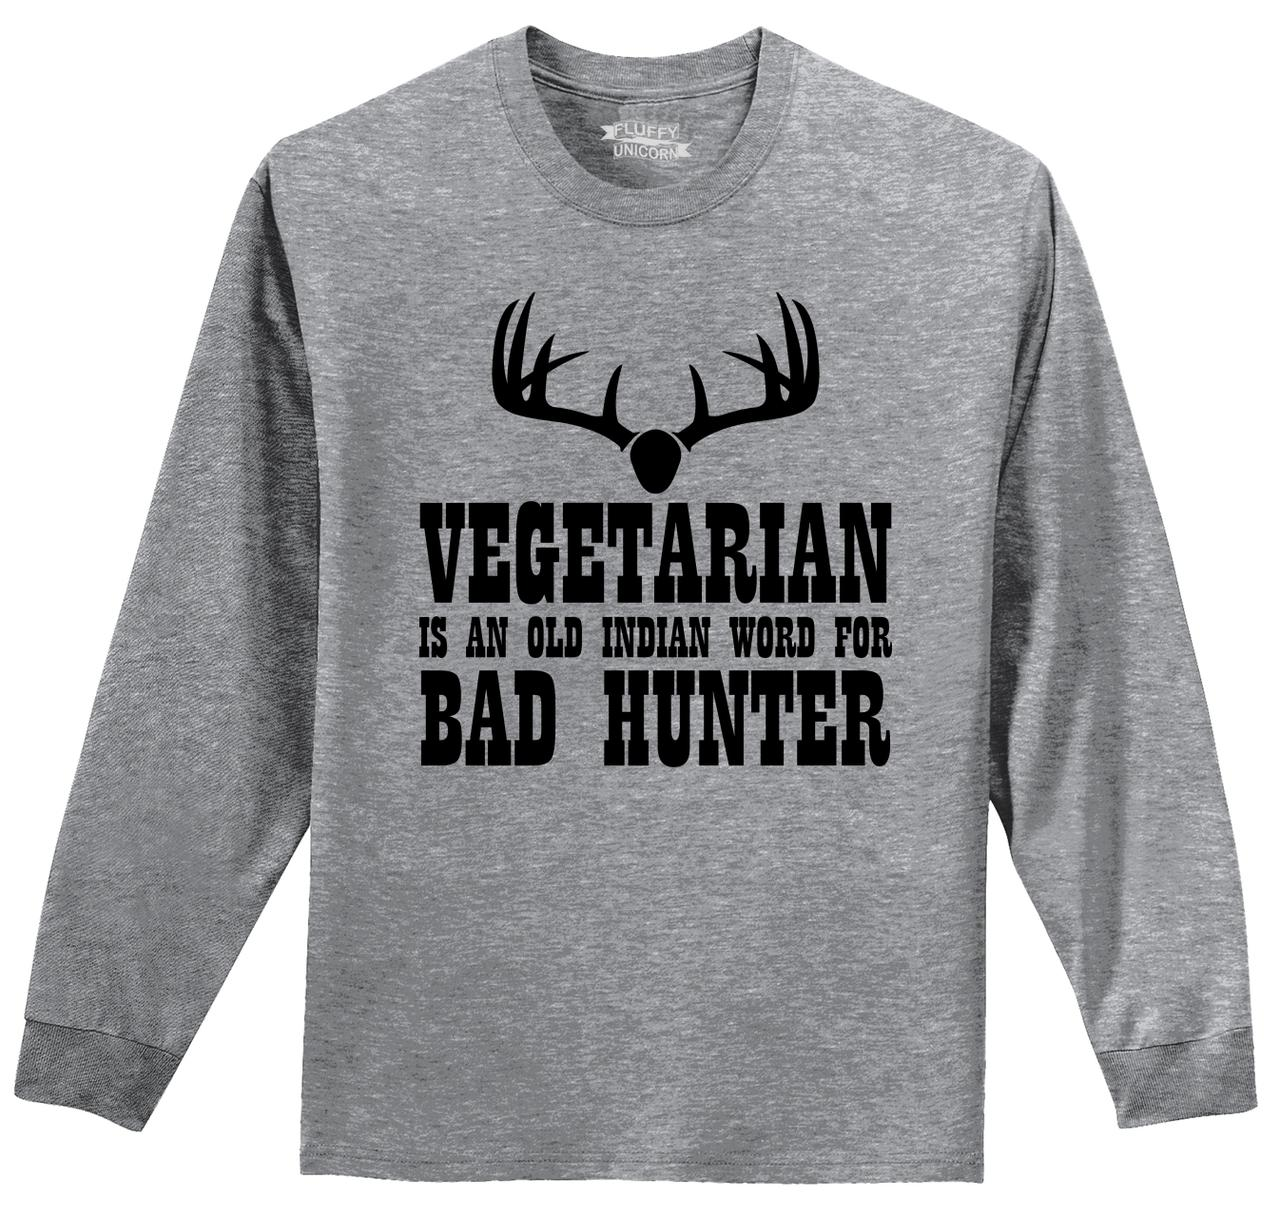 979cec94 ... One Word Funny T Shirts: Vegetarian Indian Word Bad Hunter Funny L/S T  Shirt